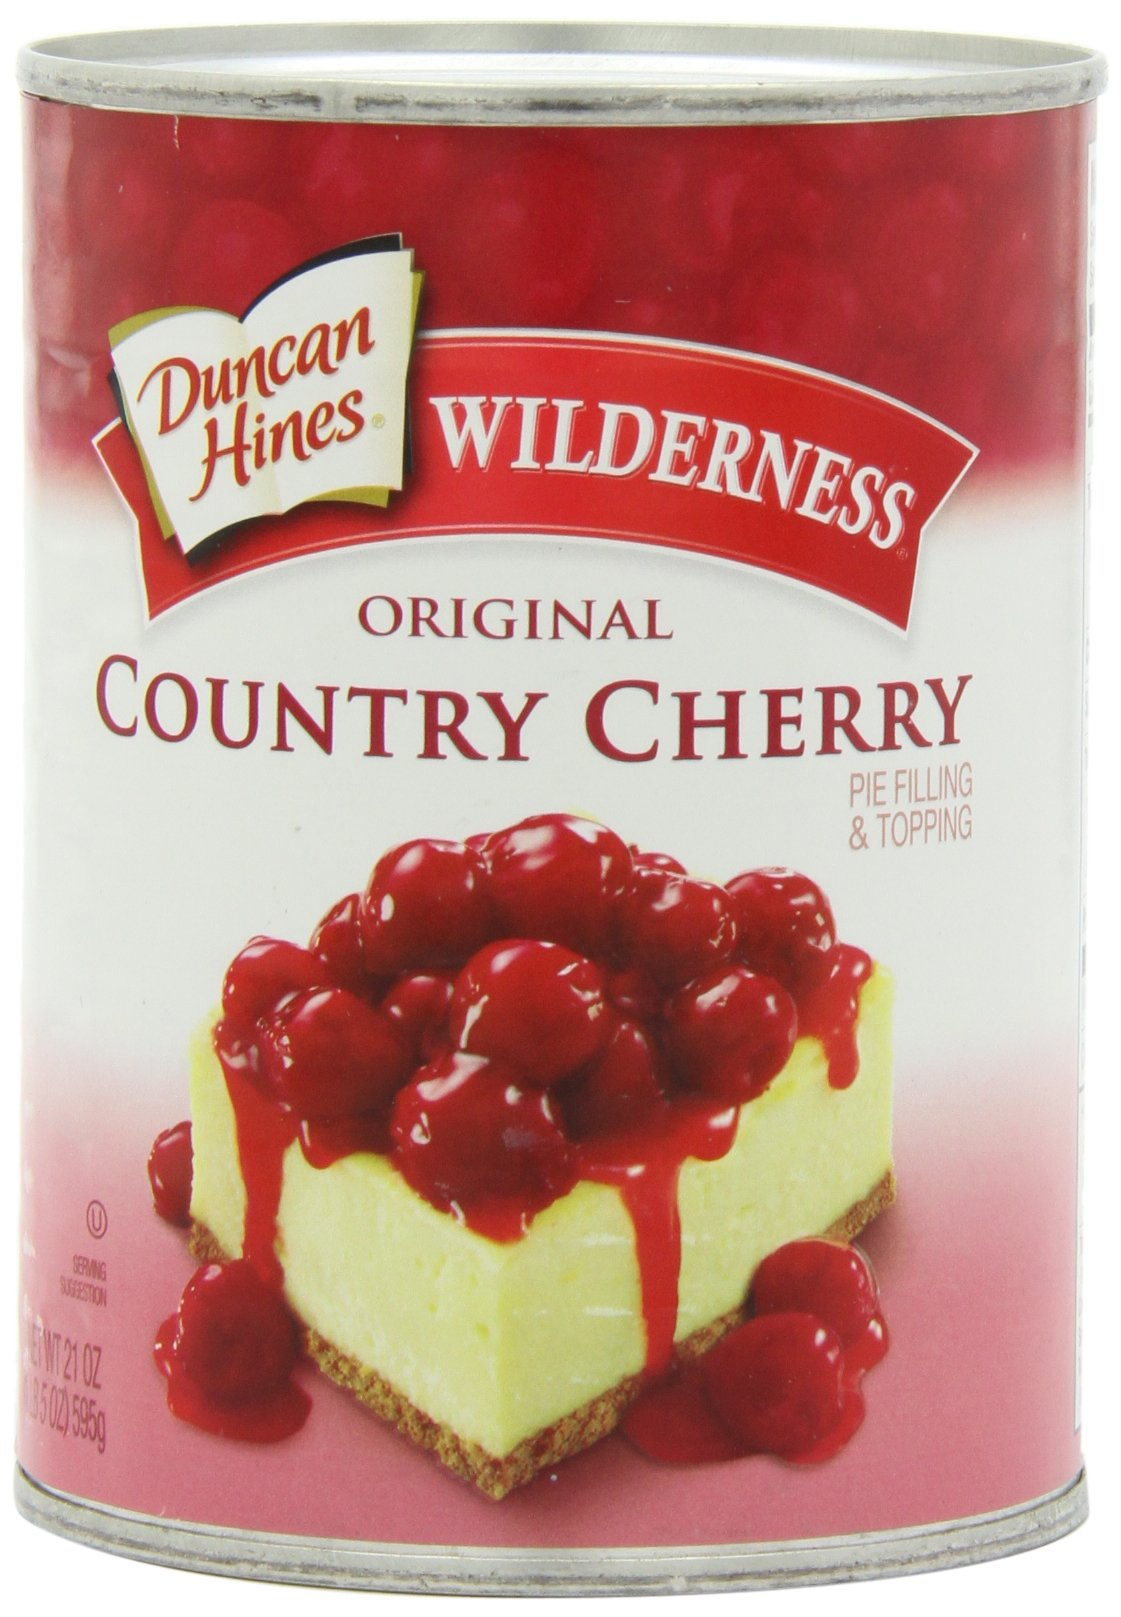 Wilderness Original Country Cherry Pie Filling and Topping, 21-Ounce (Pack of 6)